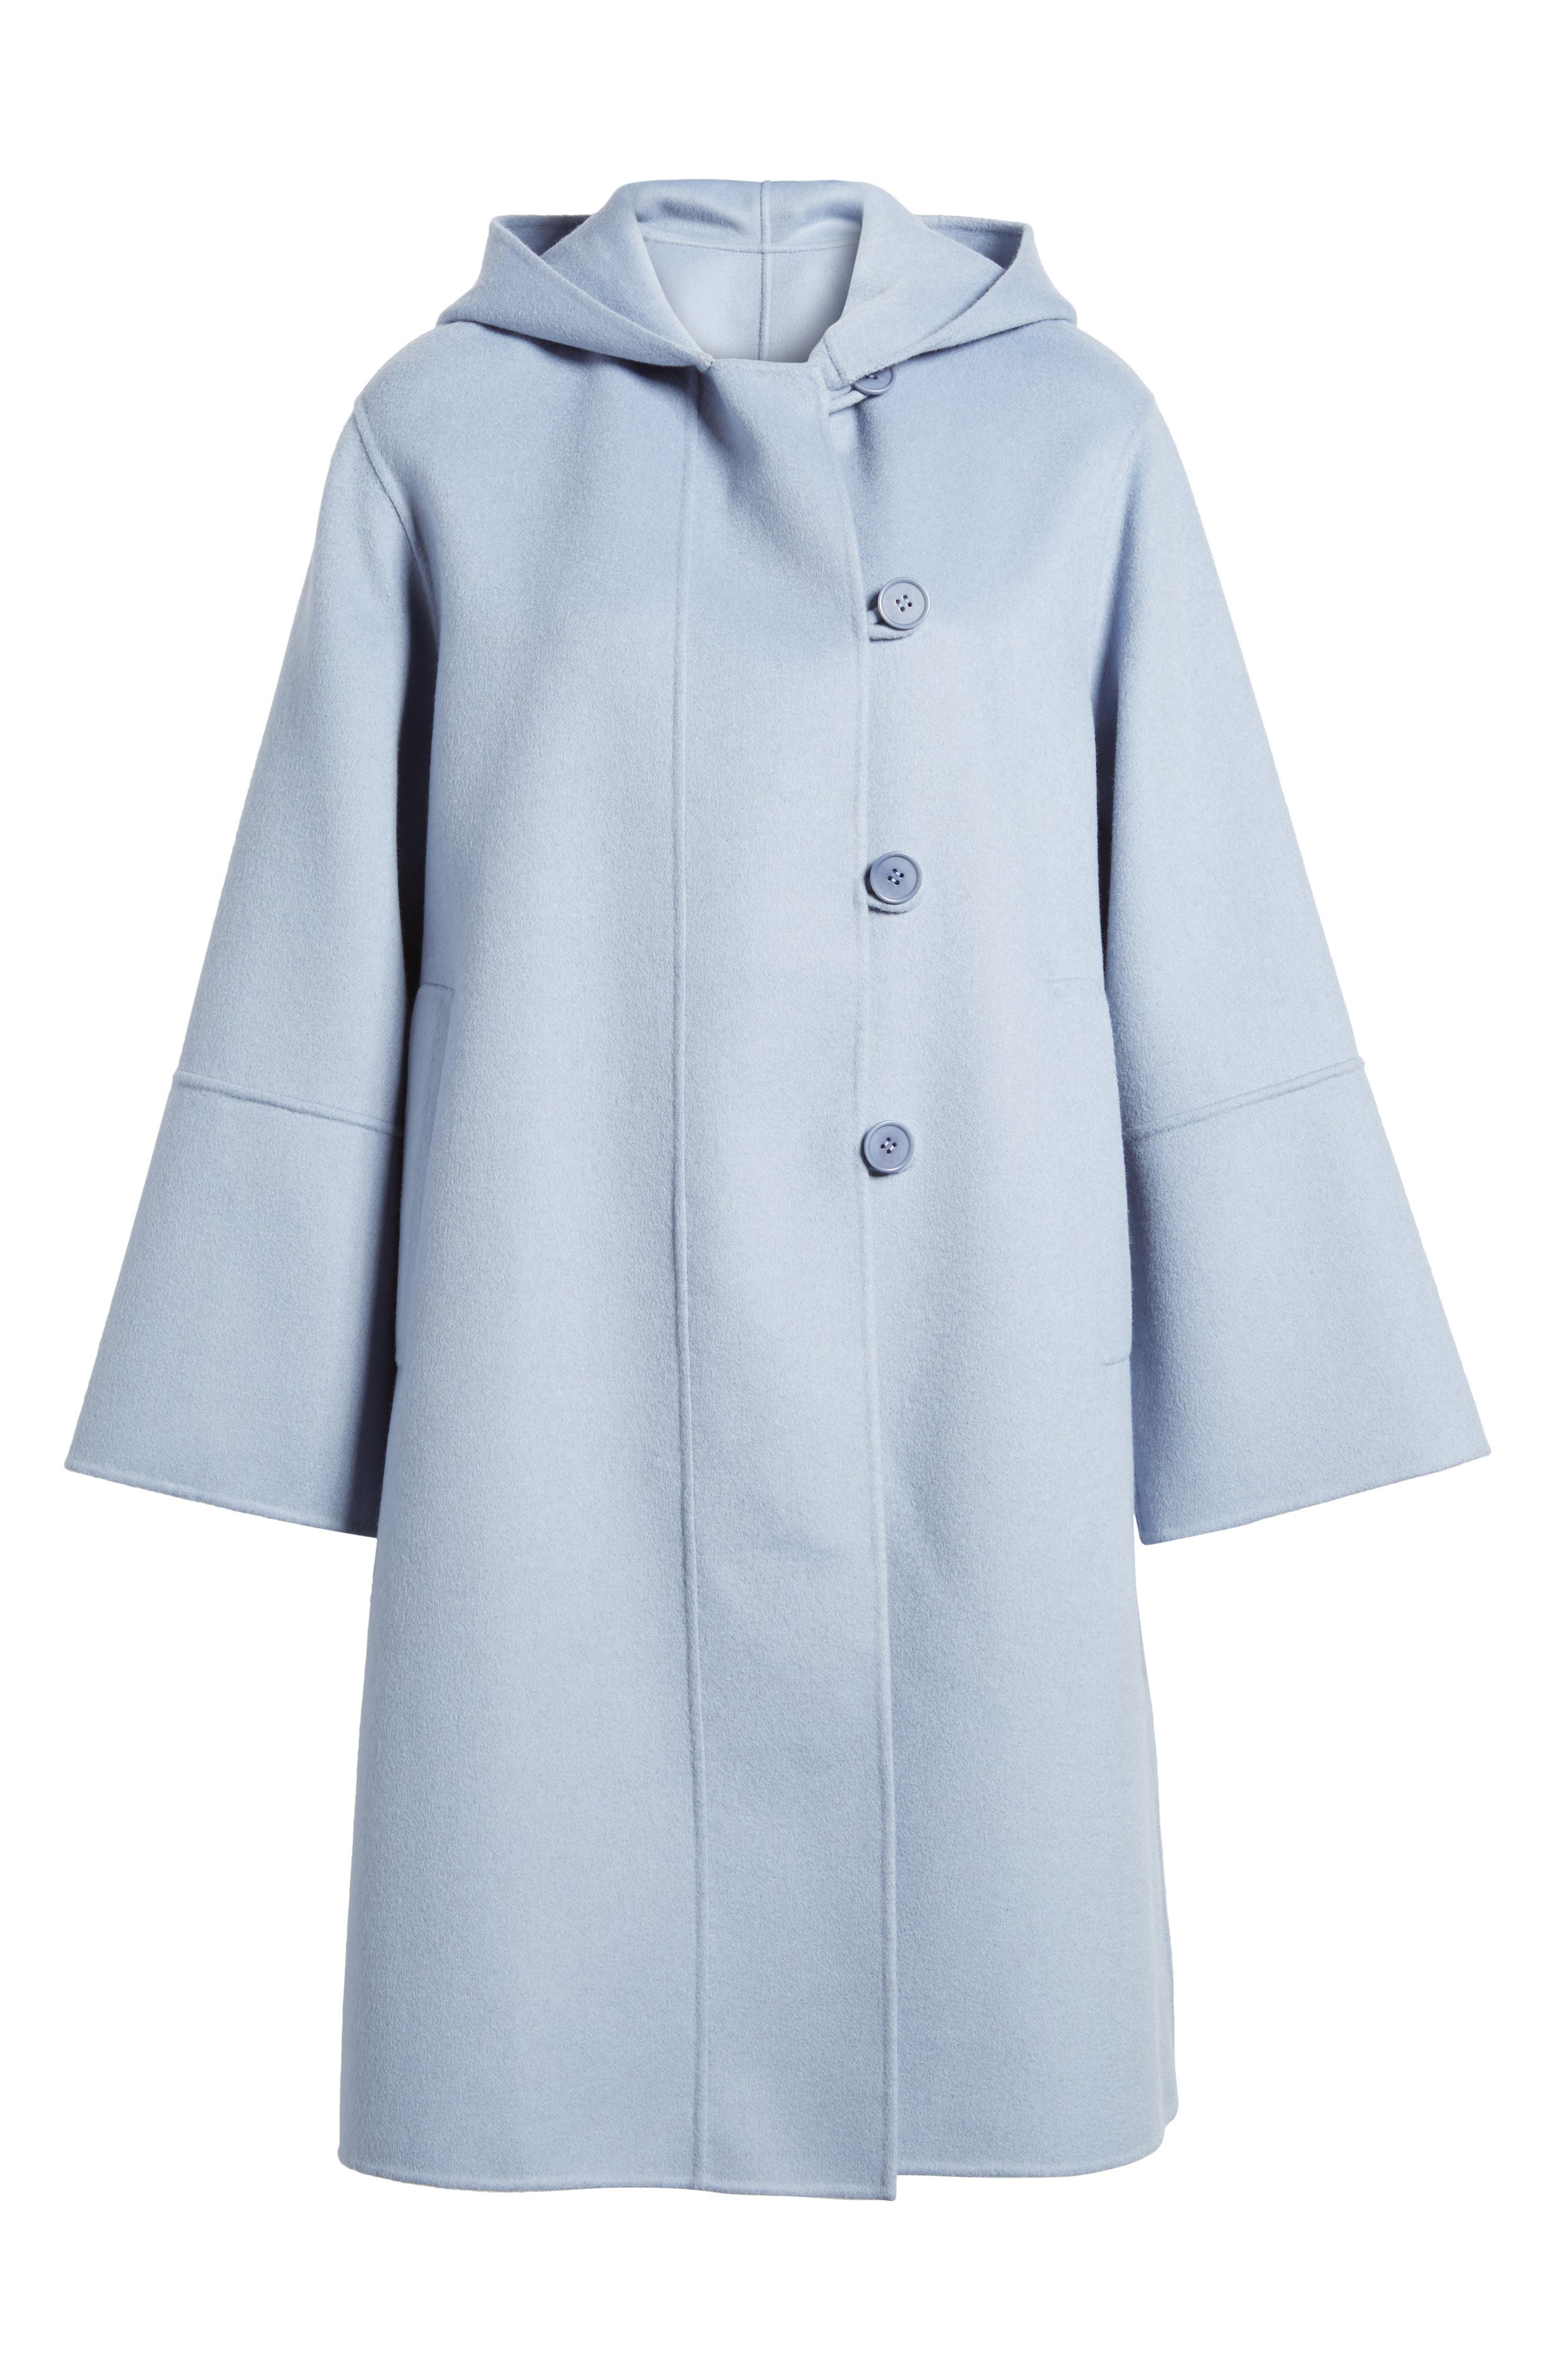 Hooded Wool & Cashmere Coat,                             Alternate thumbnail 6, color,                             Blue Tempest